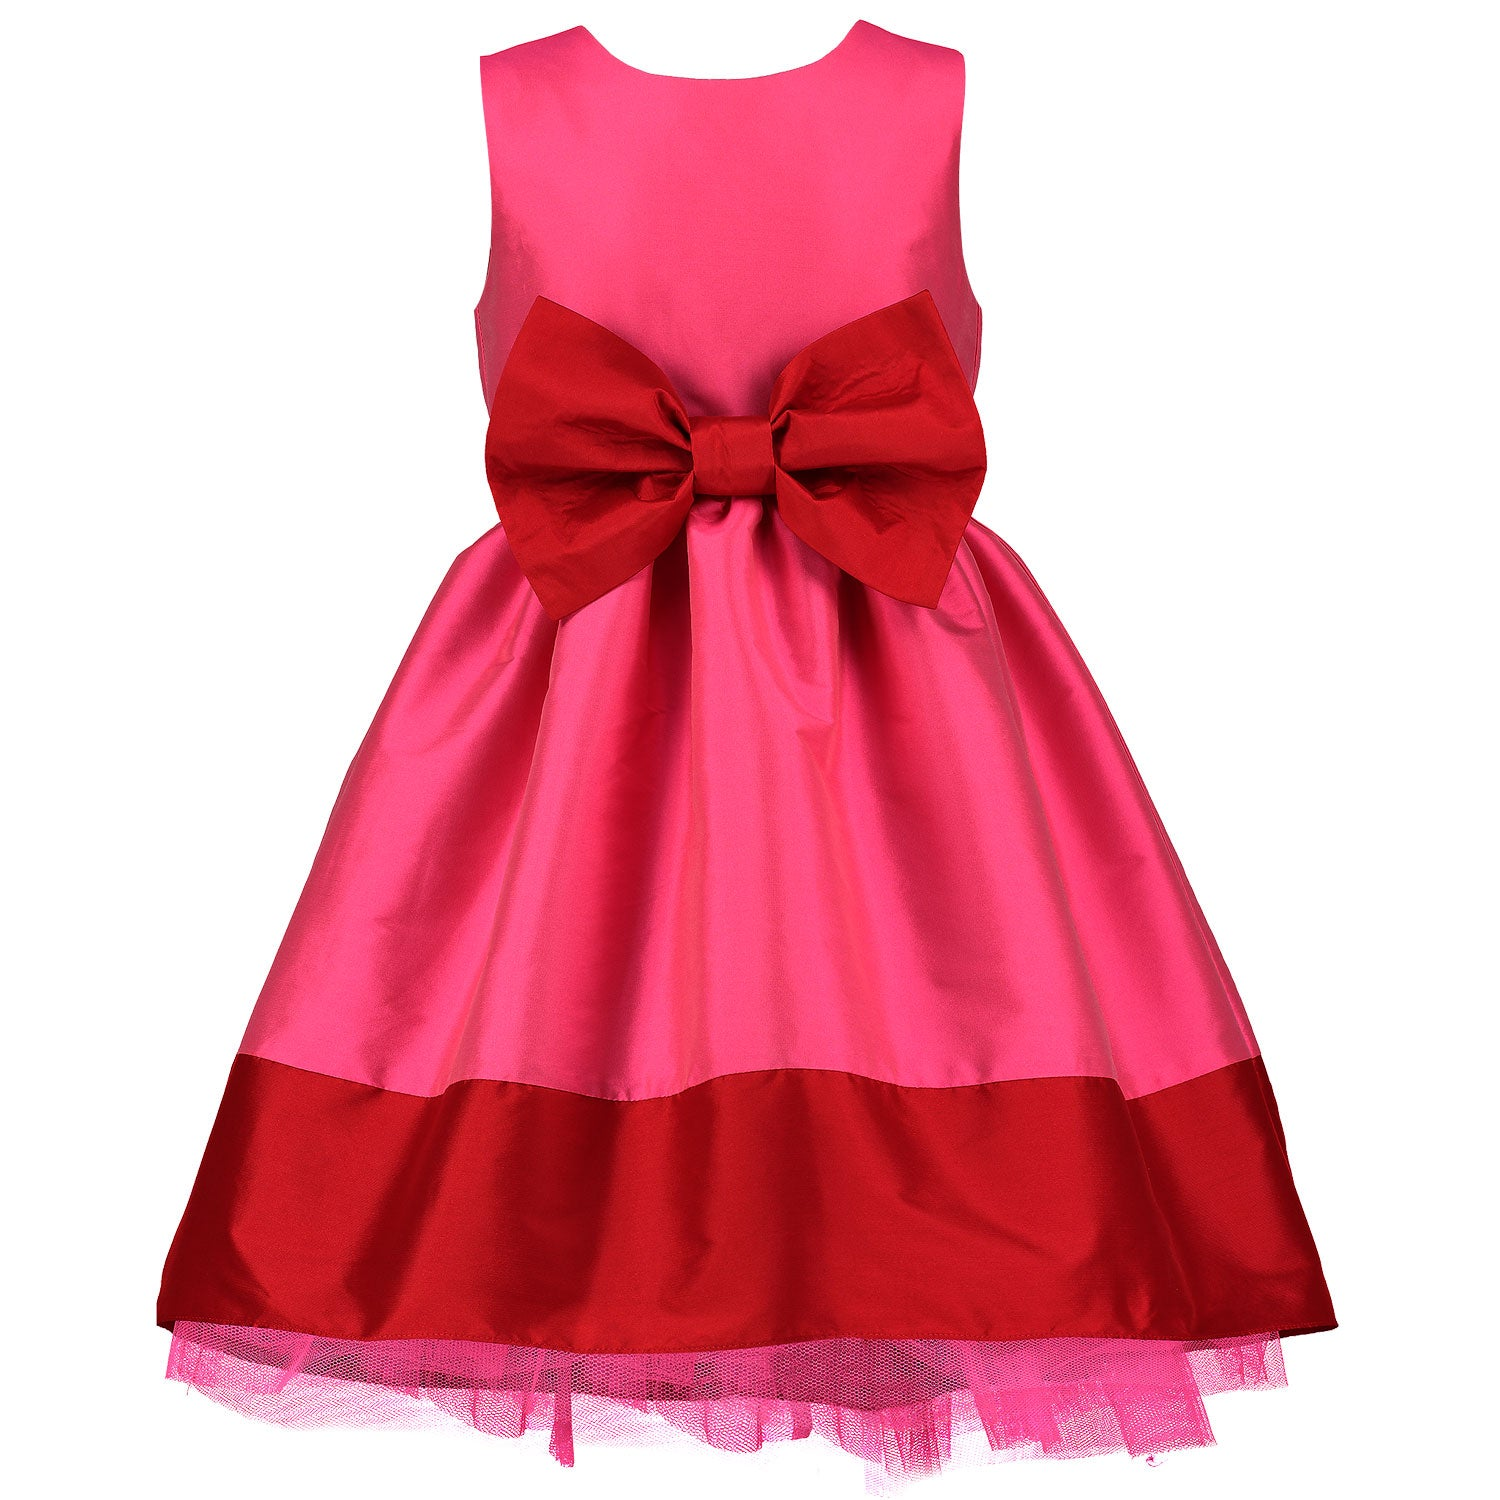 Brand New Girls Uk High Street Red Bow Dress Age 2-3 Years Summer Party